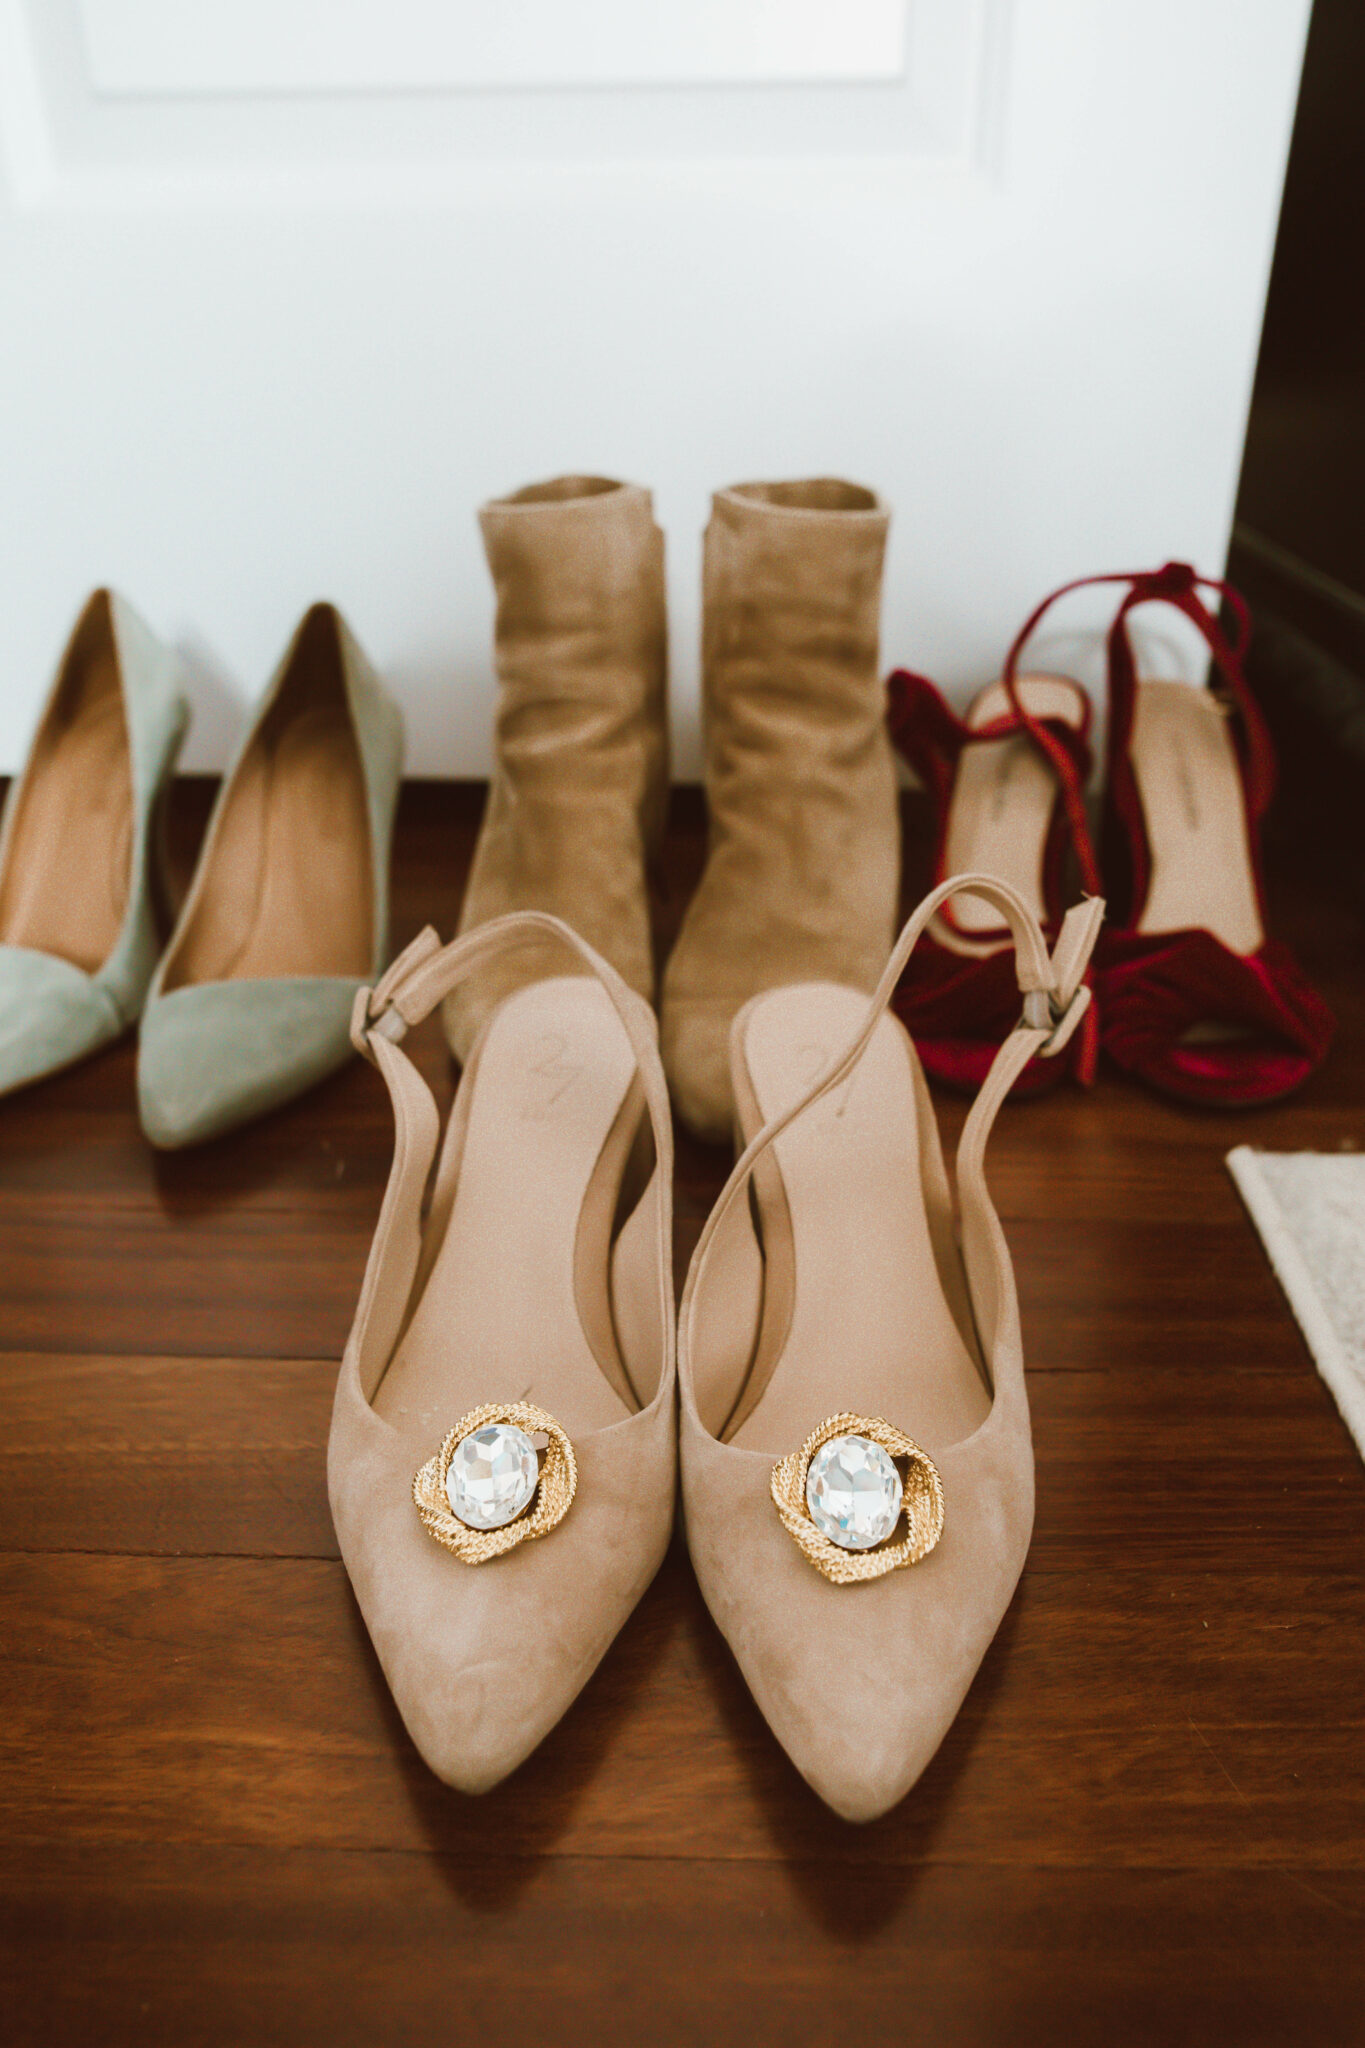 Clip On Earrings by popular Chicago fashion blog, Glass of Glam: image of brown suede pumps with clip on earrings on them.